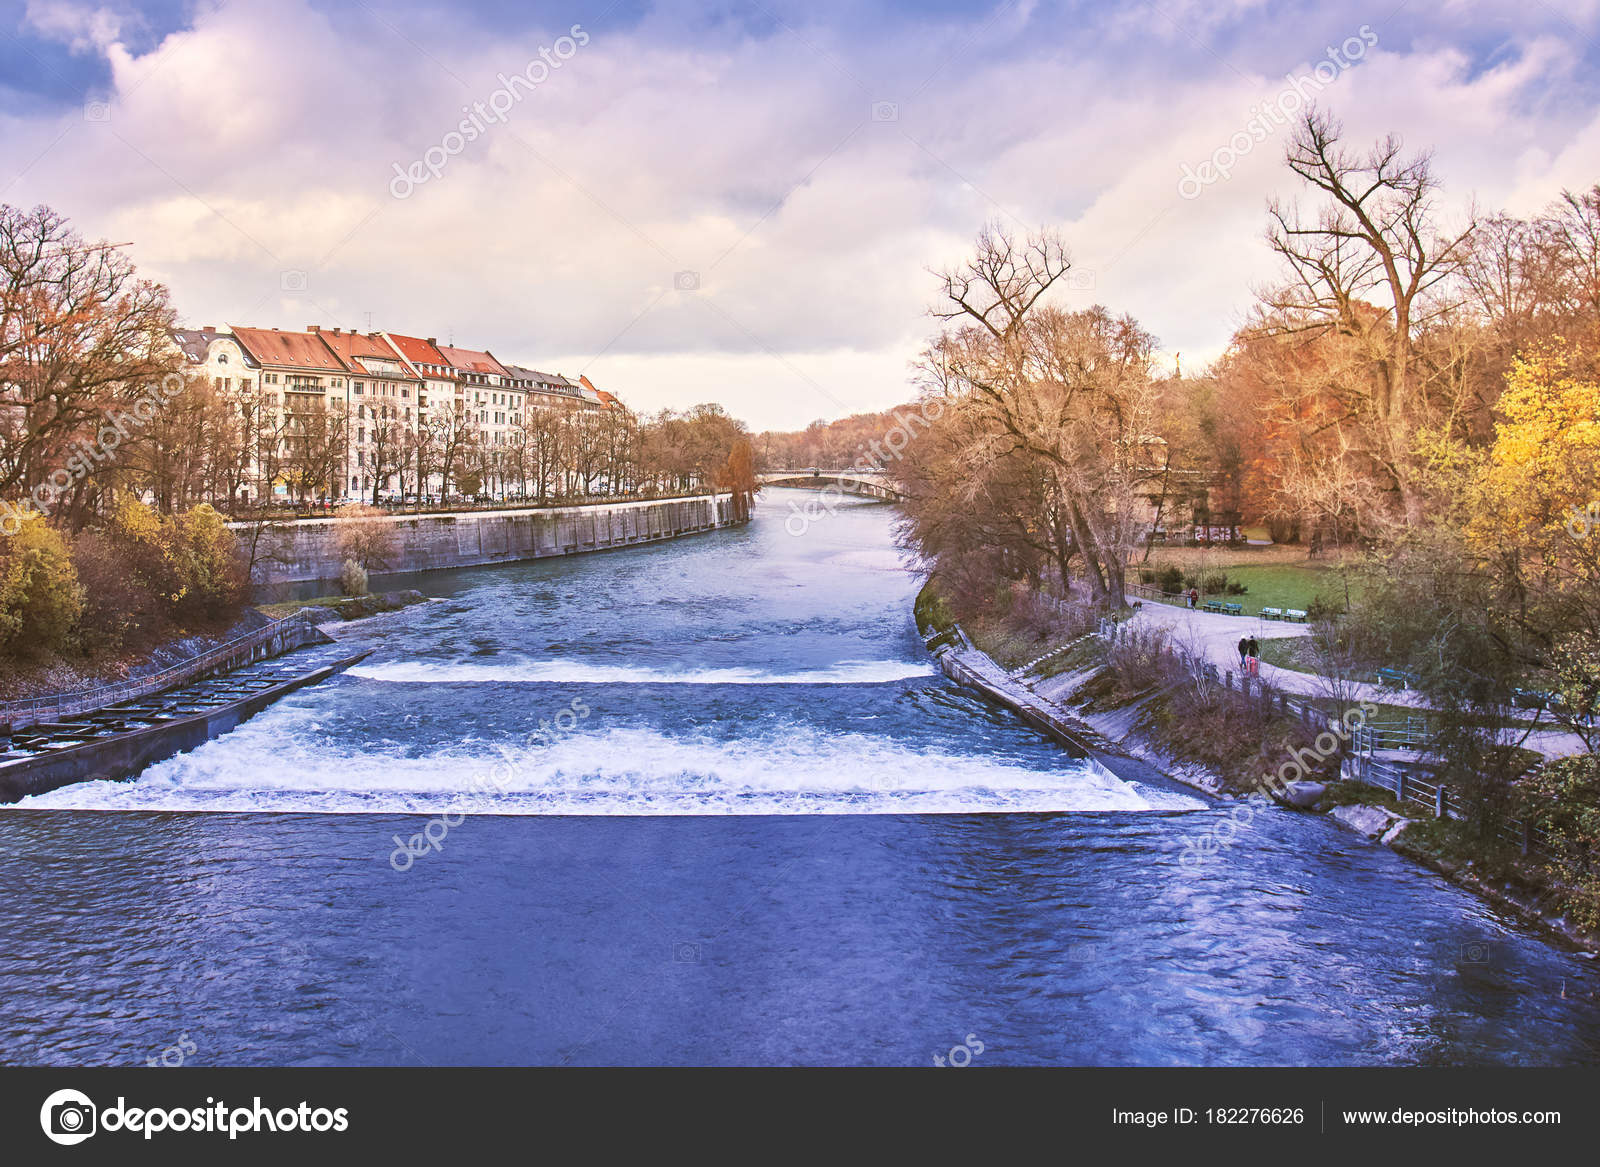 https://st3.depositphotos.com/7040152/18227/i/1600/depositphotos_182276626-stock-photo-view-isar-river-munich-germany.jpg